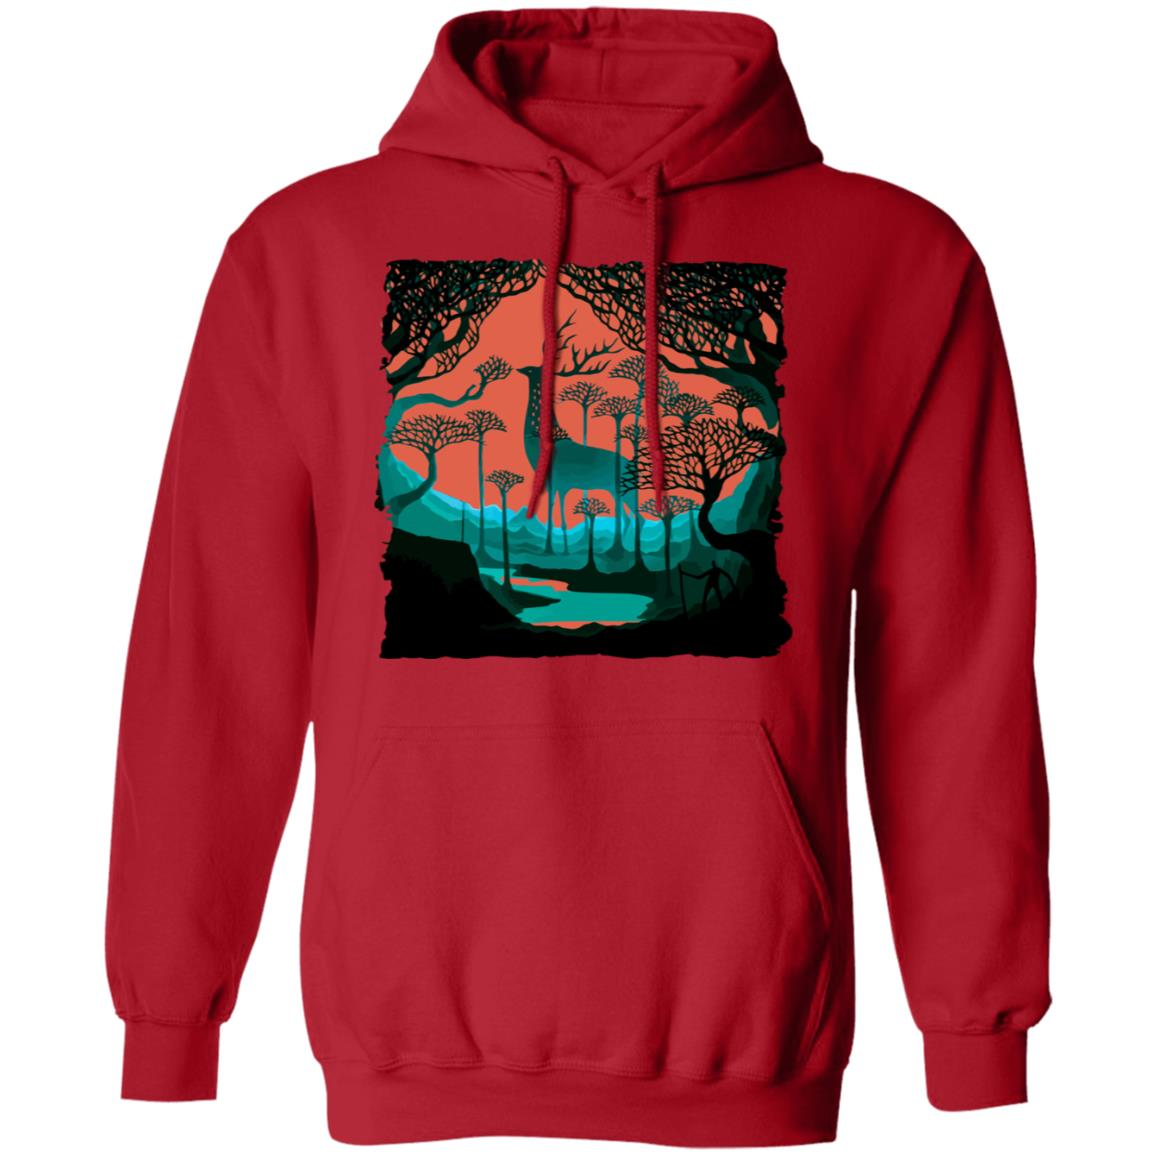 Princess Mononoke – Shishigami of The Forest Hoodie Unisex